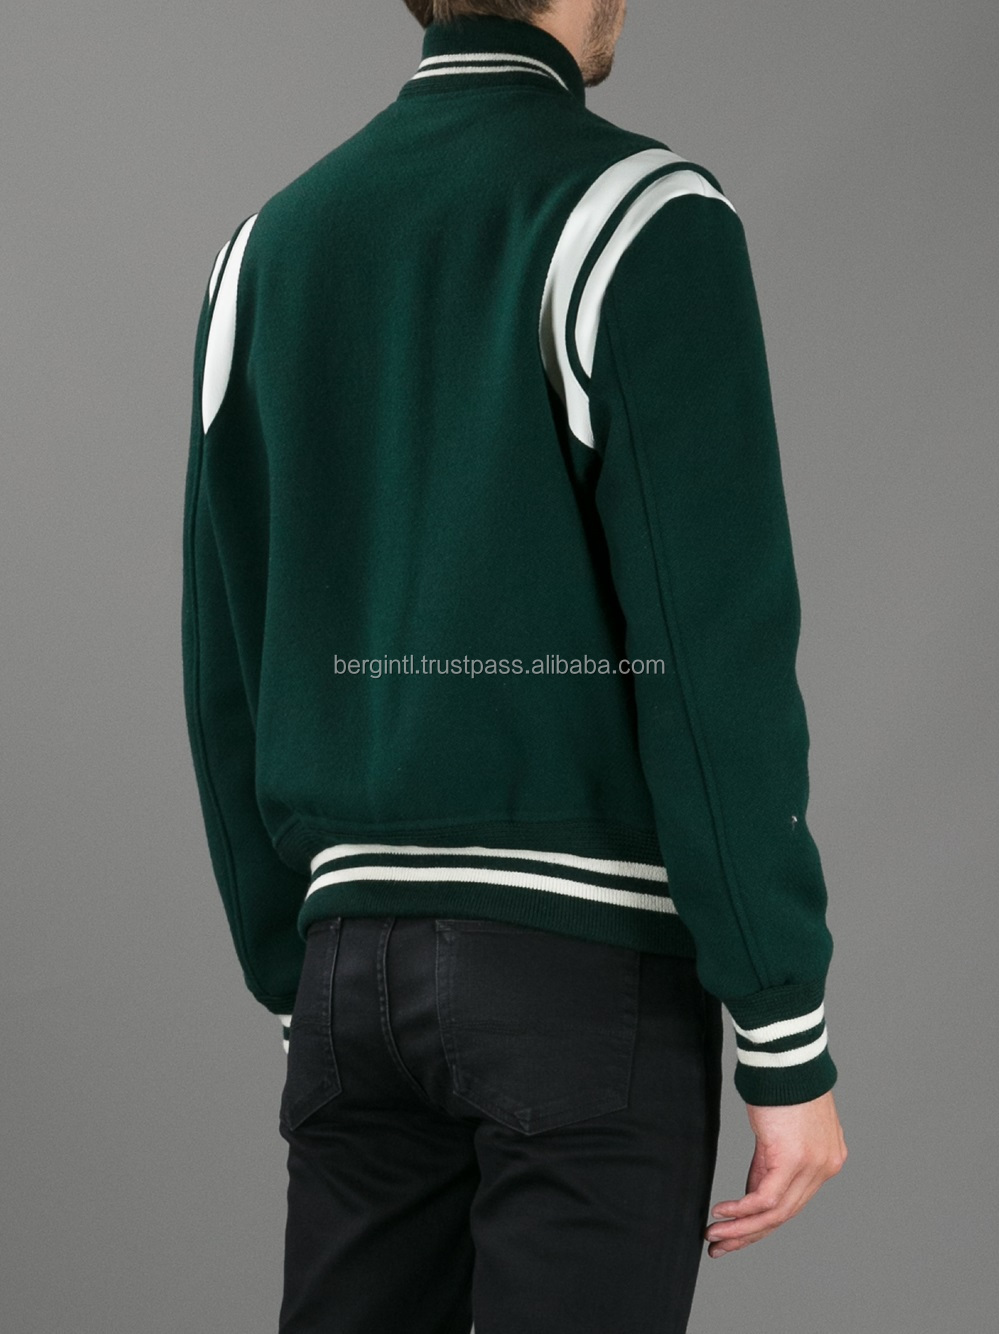 Design your own t-shirt label - Customized Letterman Jackets With Custom Chenille Patches Labels Tags Design Your Own Varsity Jackets